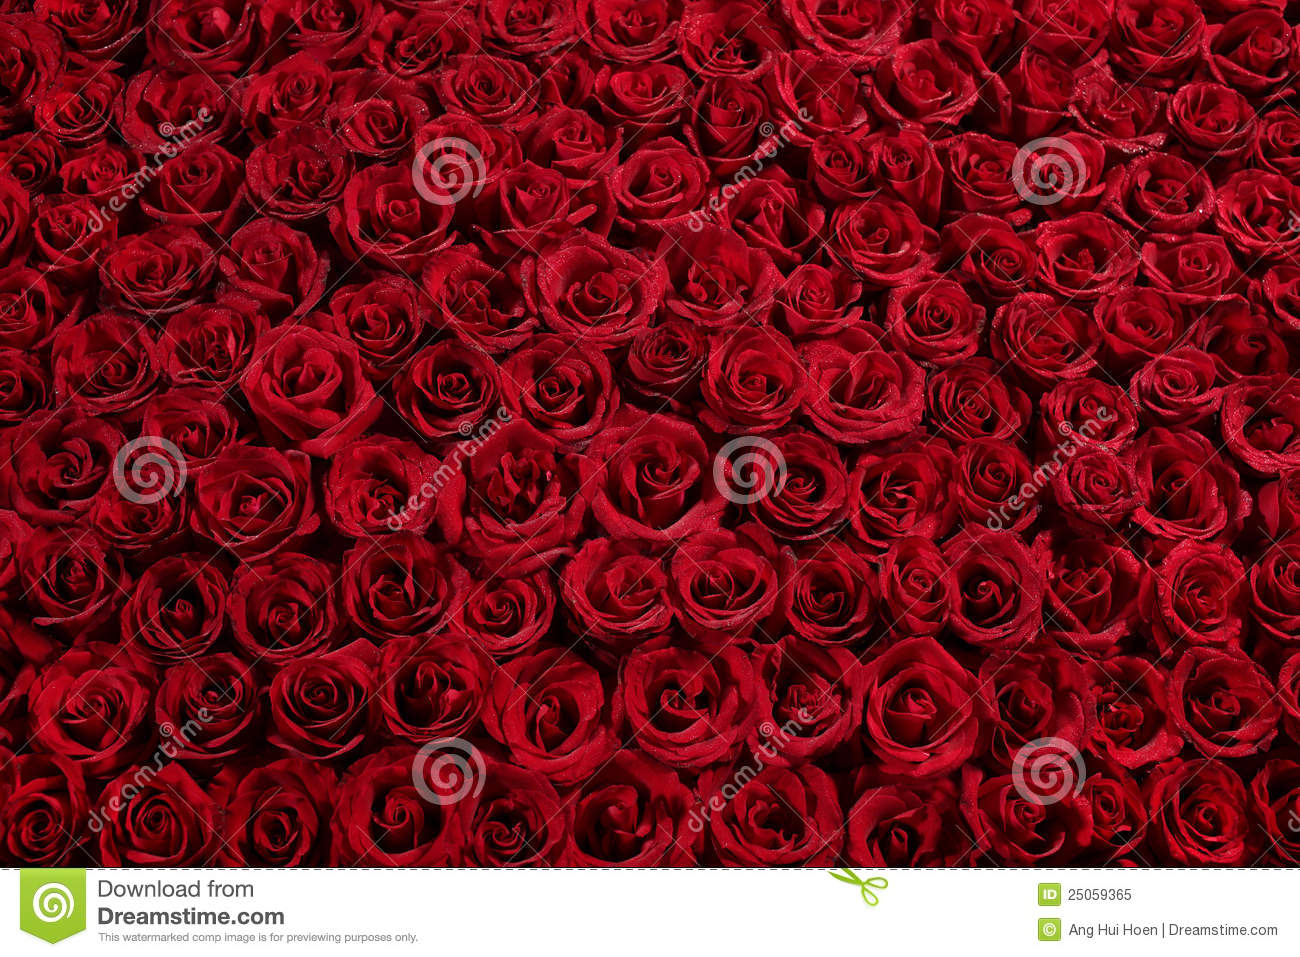 Of roses . Clipart rose bed